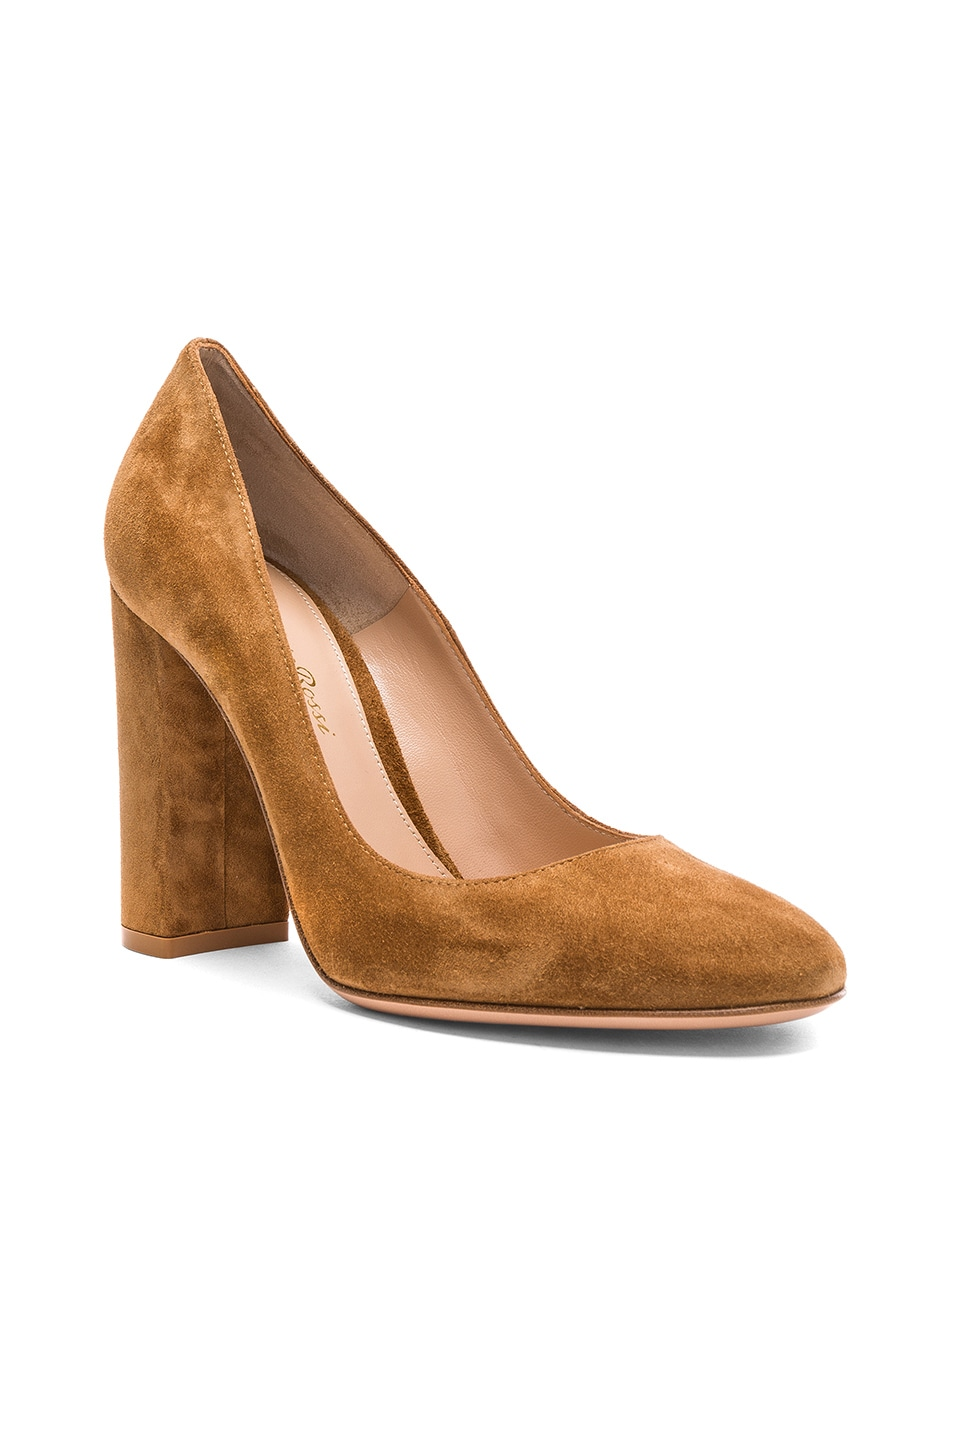 Image 2 of Gianvito Rossi Suede Chunky Heels in Almond